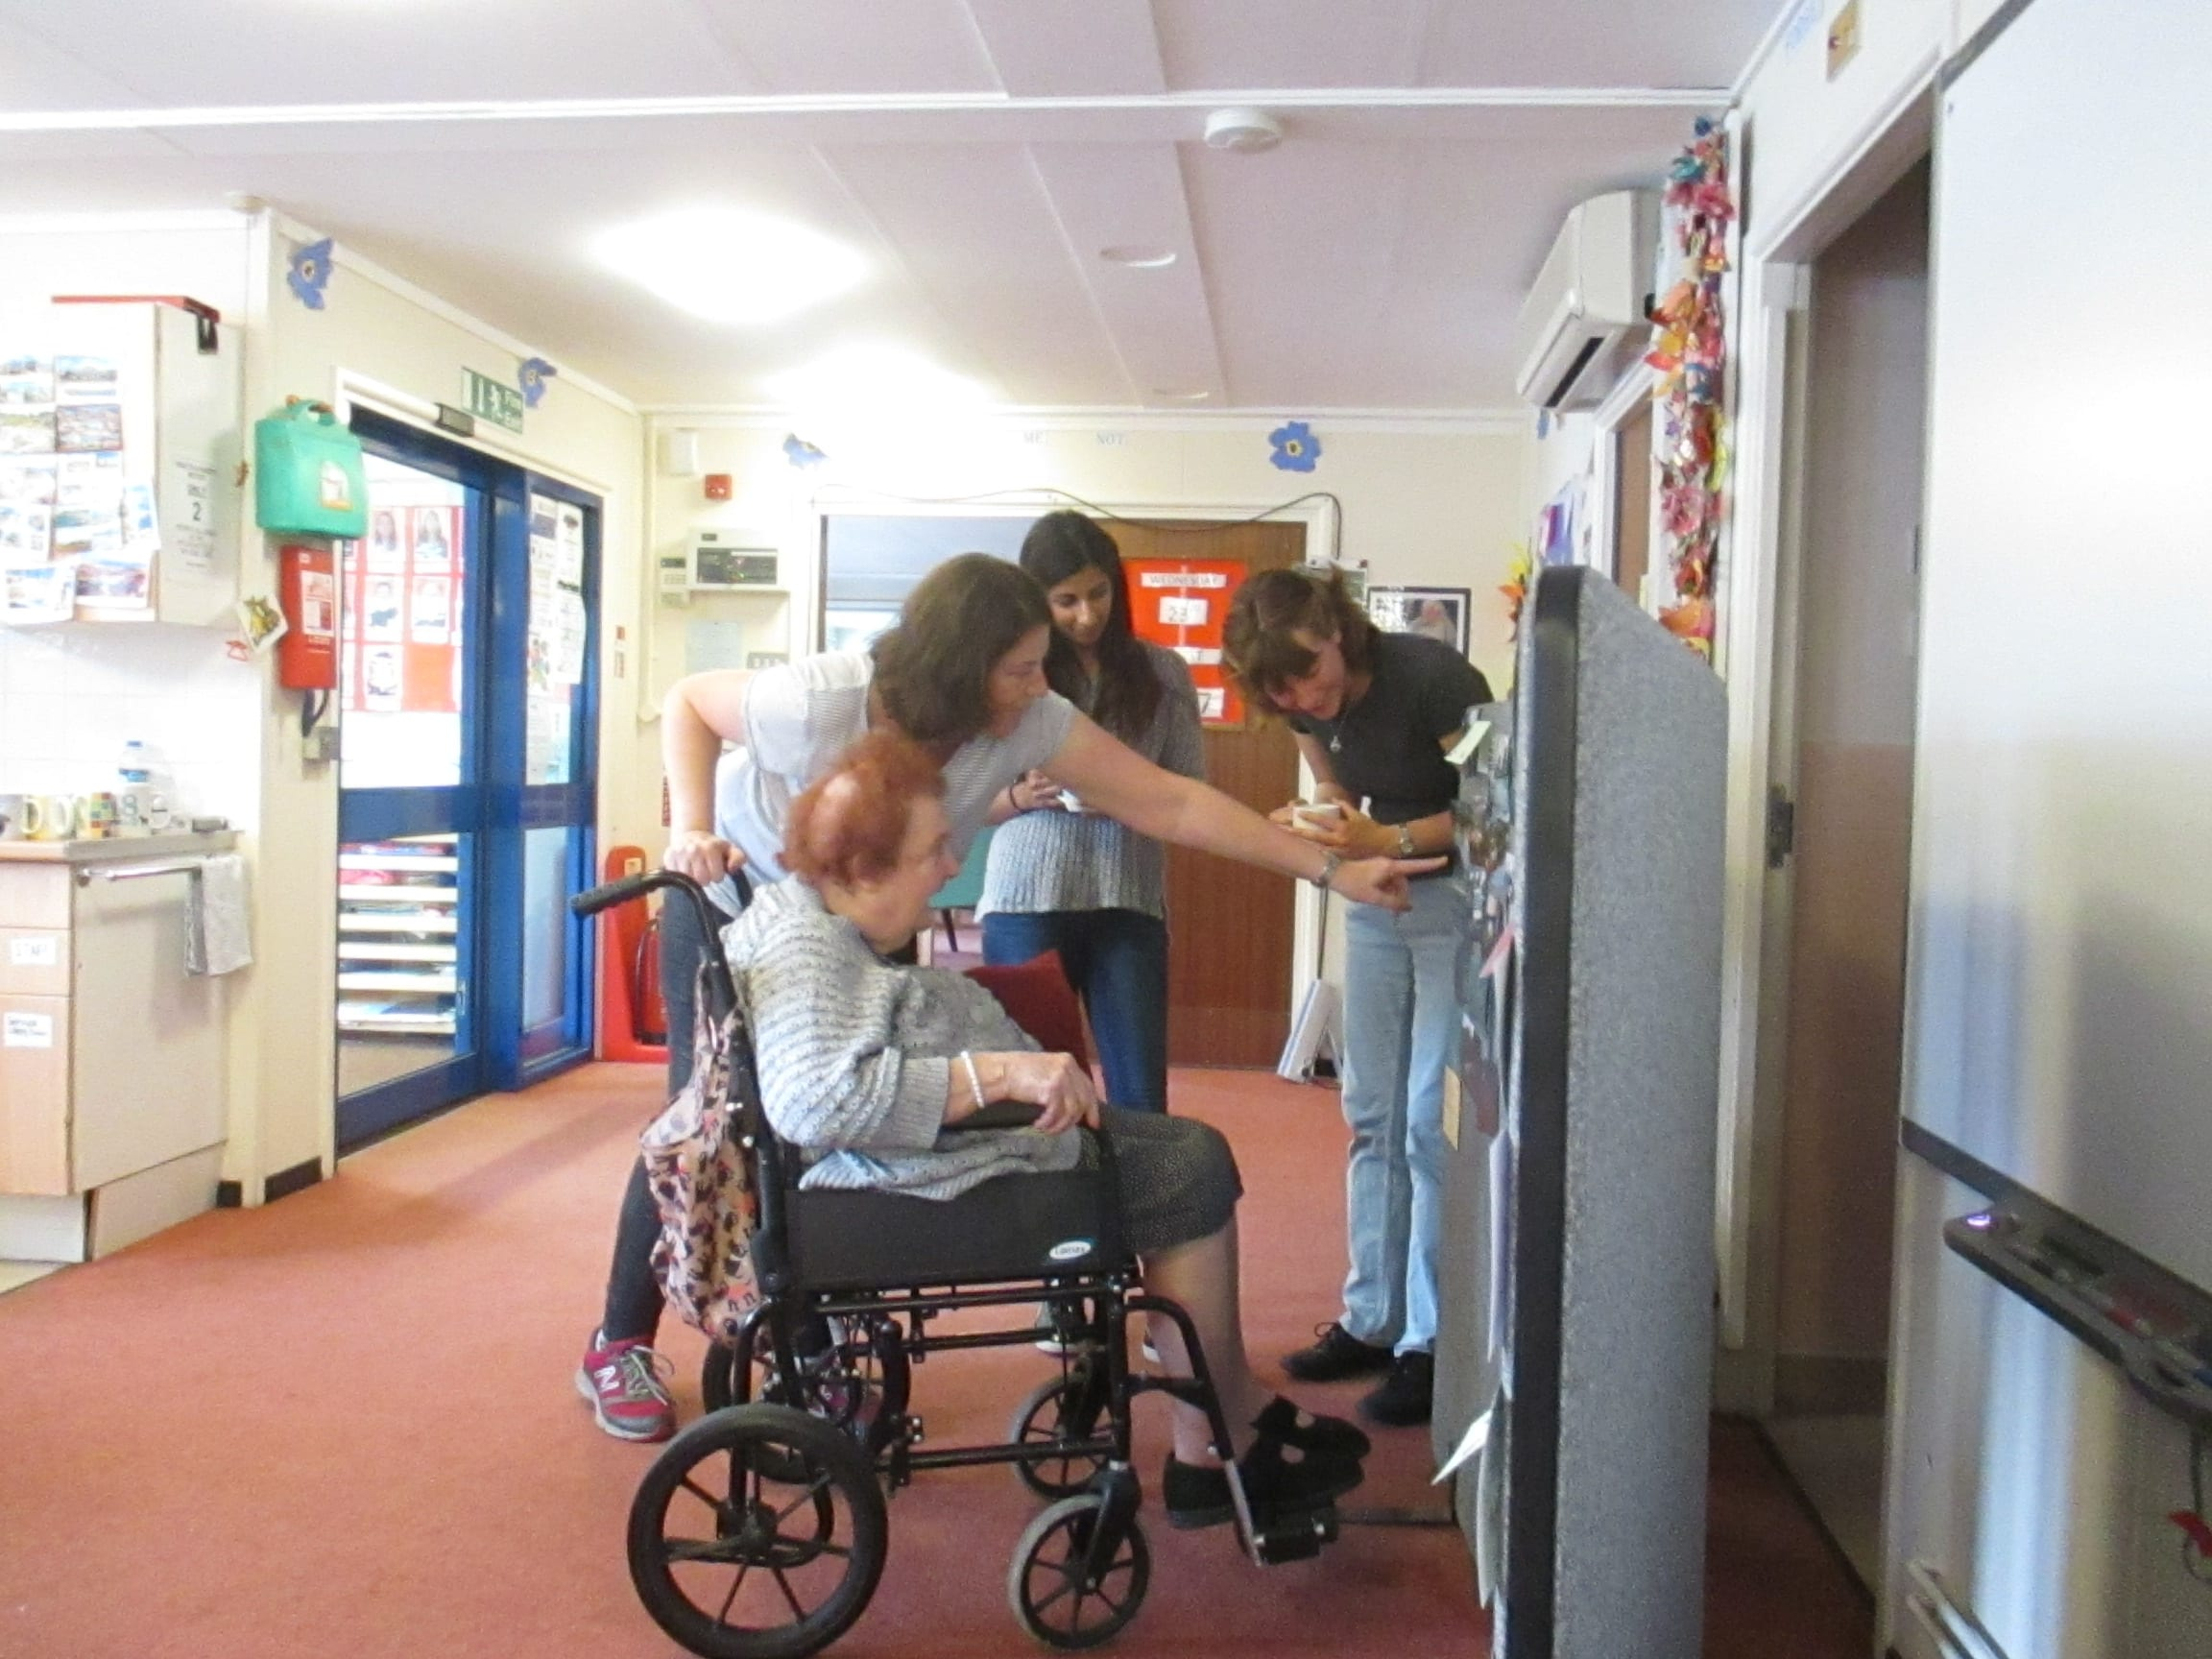 Rachael and Pushpa's project took place at the day centre's where the older people were already present